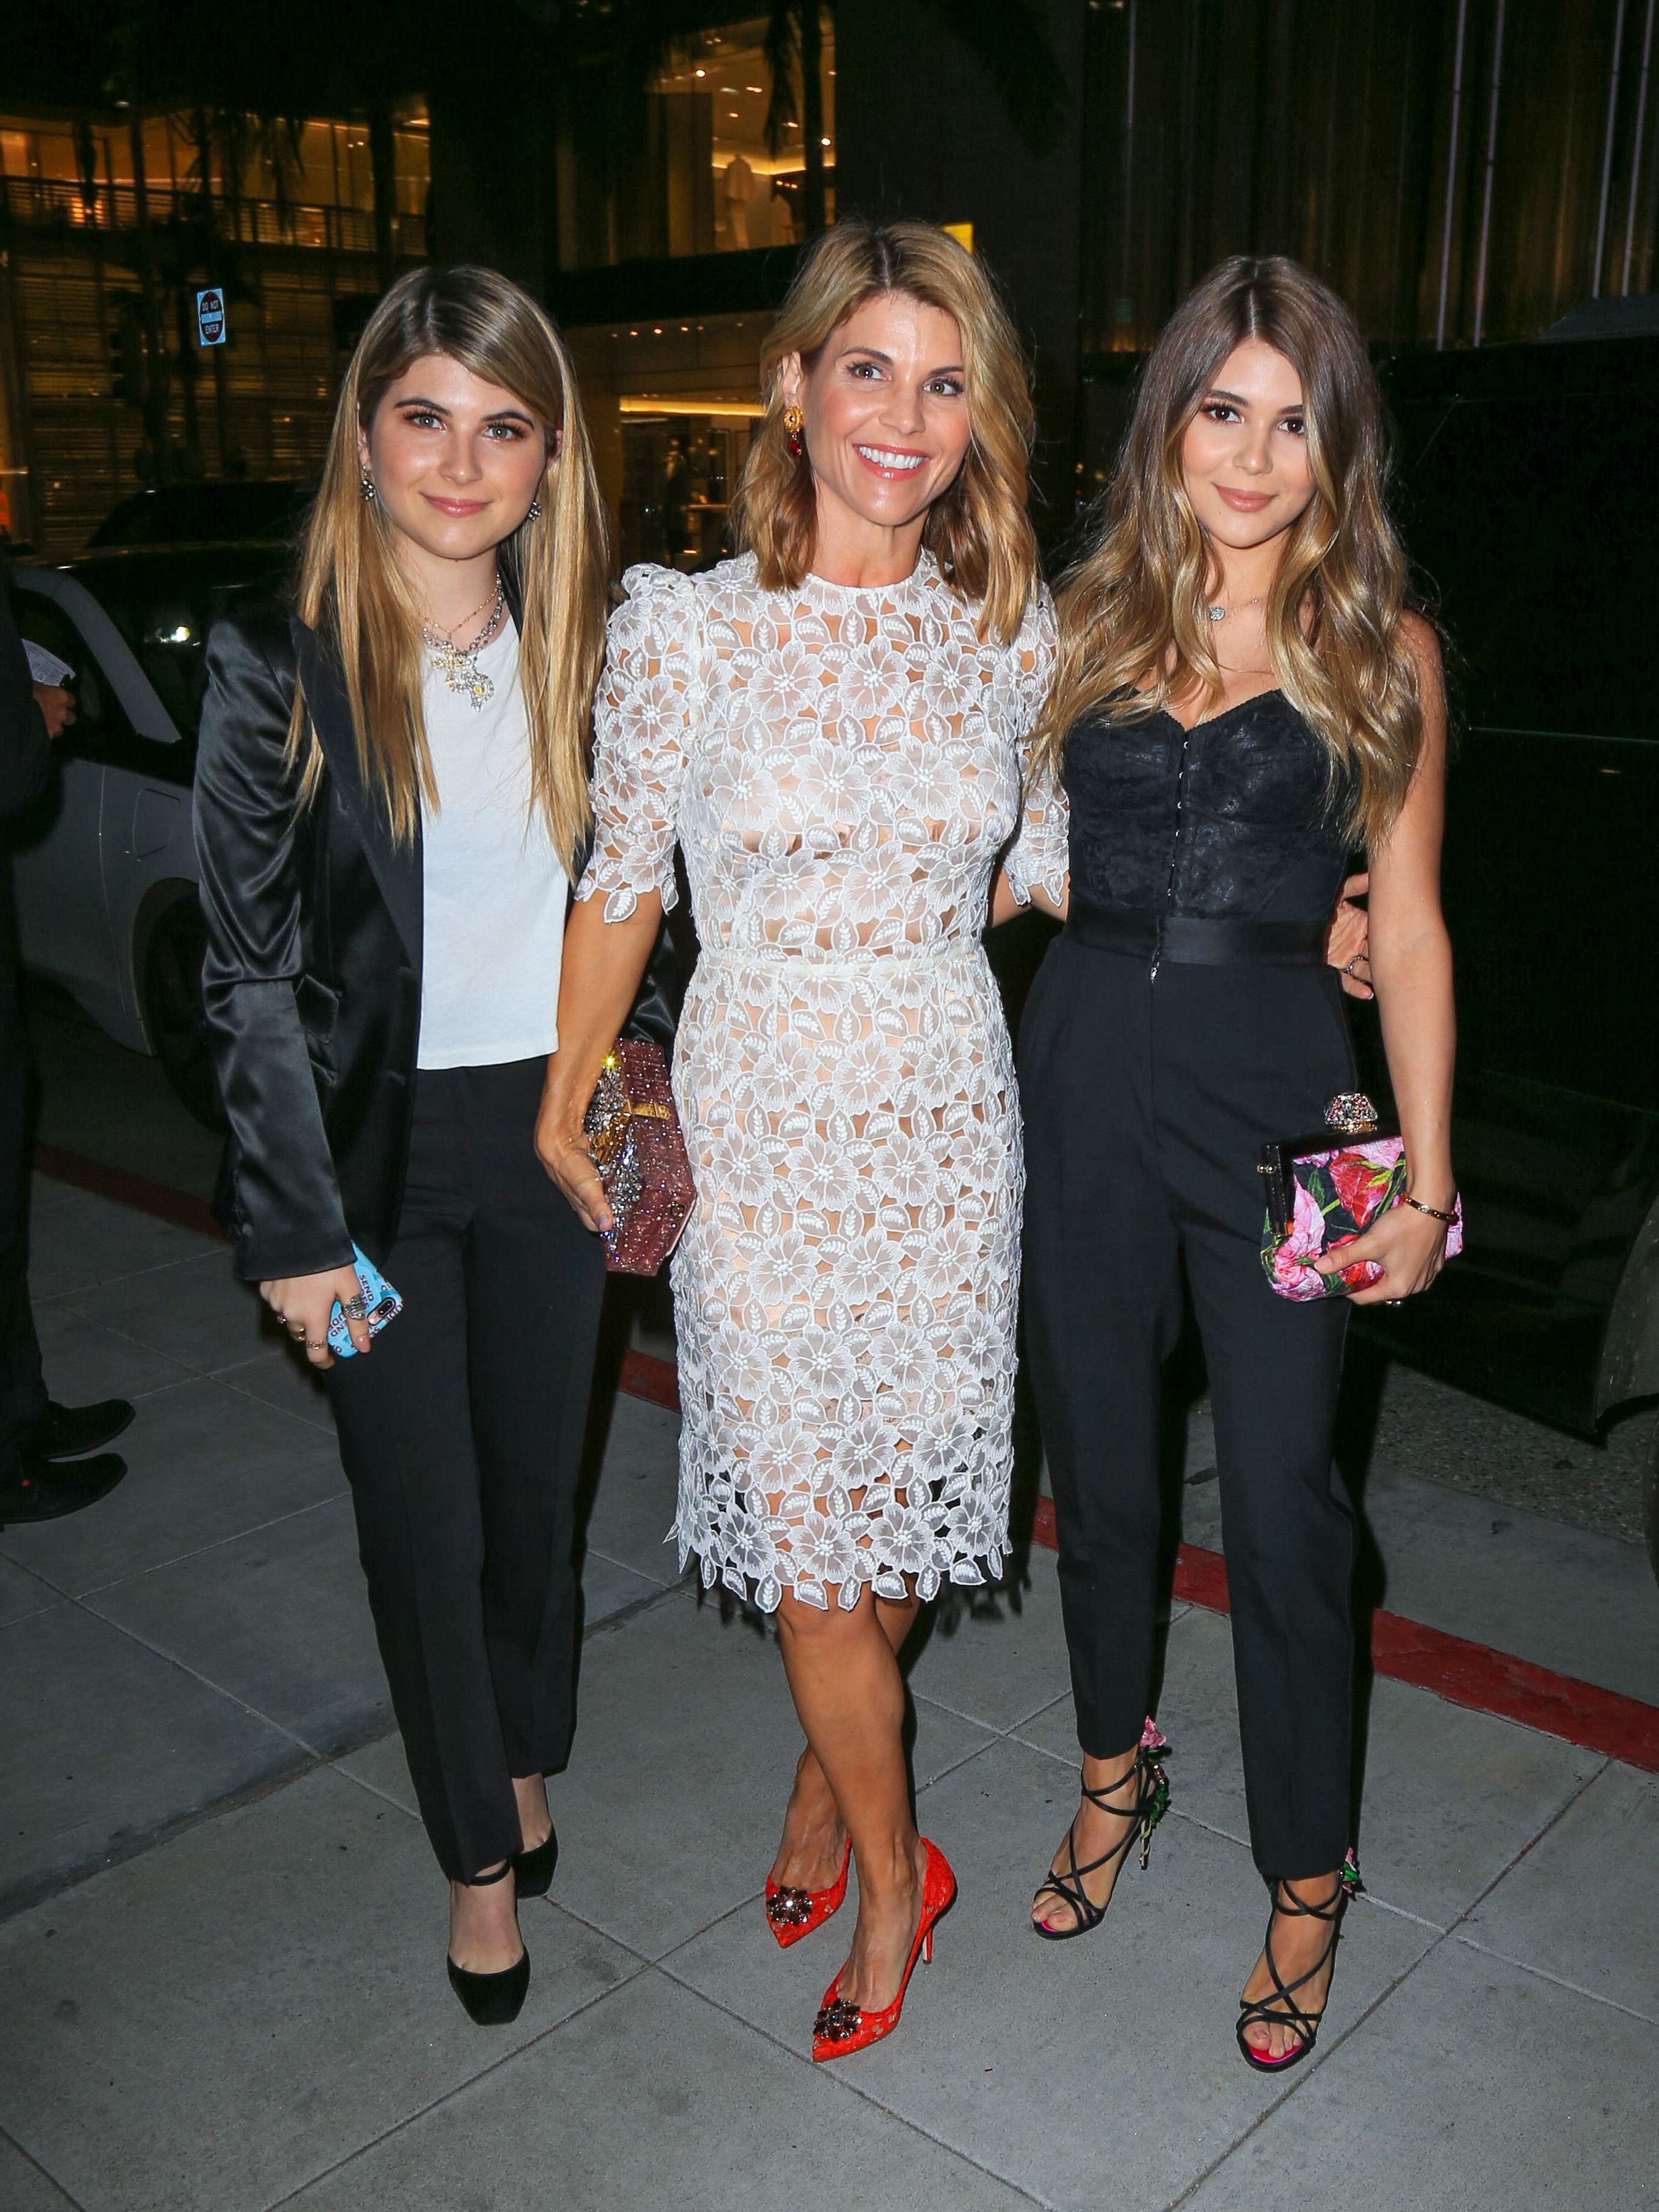 Isabella Giannulli, Lori Loughlin, and Olivia Giannulli are seen on March 23, 2017, in Los Angeles, California | Photo: wowcelebritytv/Bauer-Griffin/GC Images/Getty Images